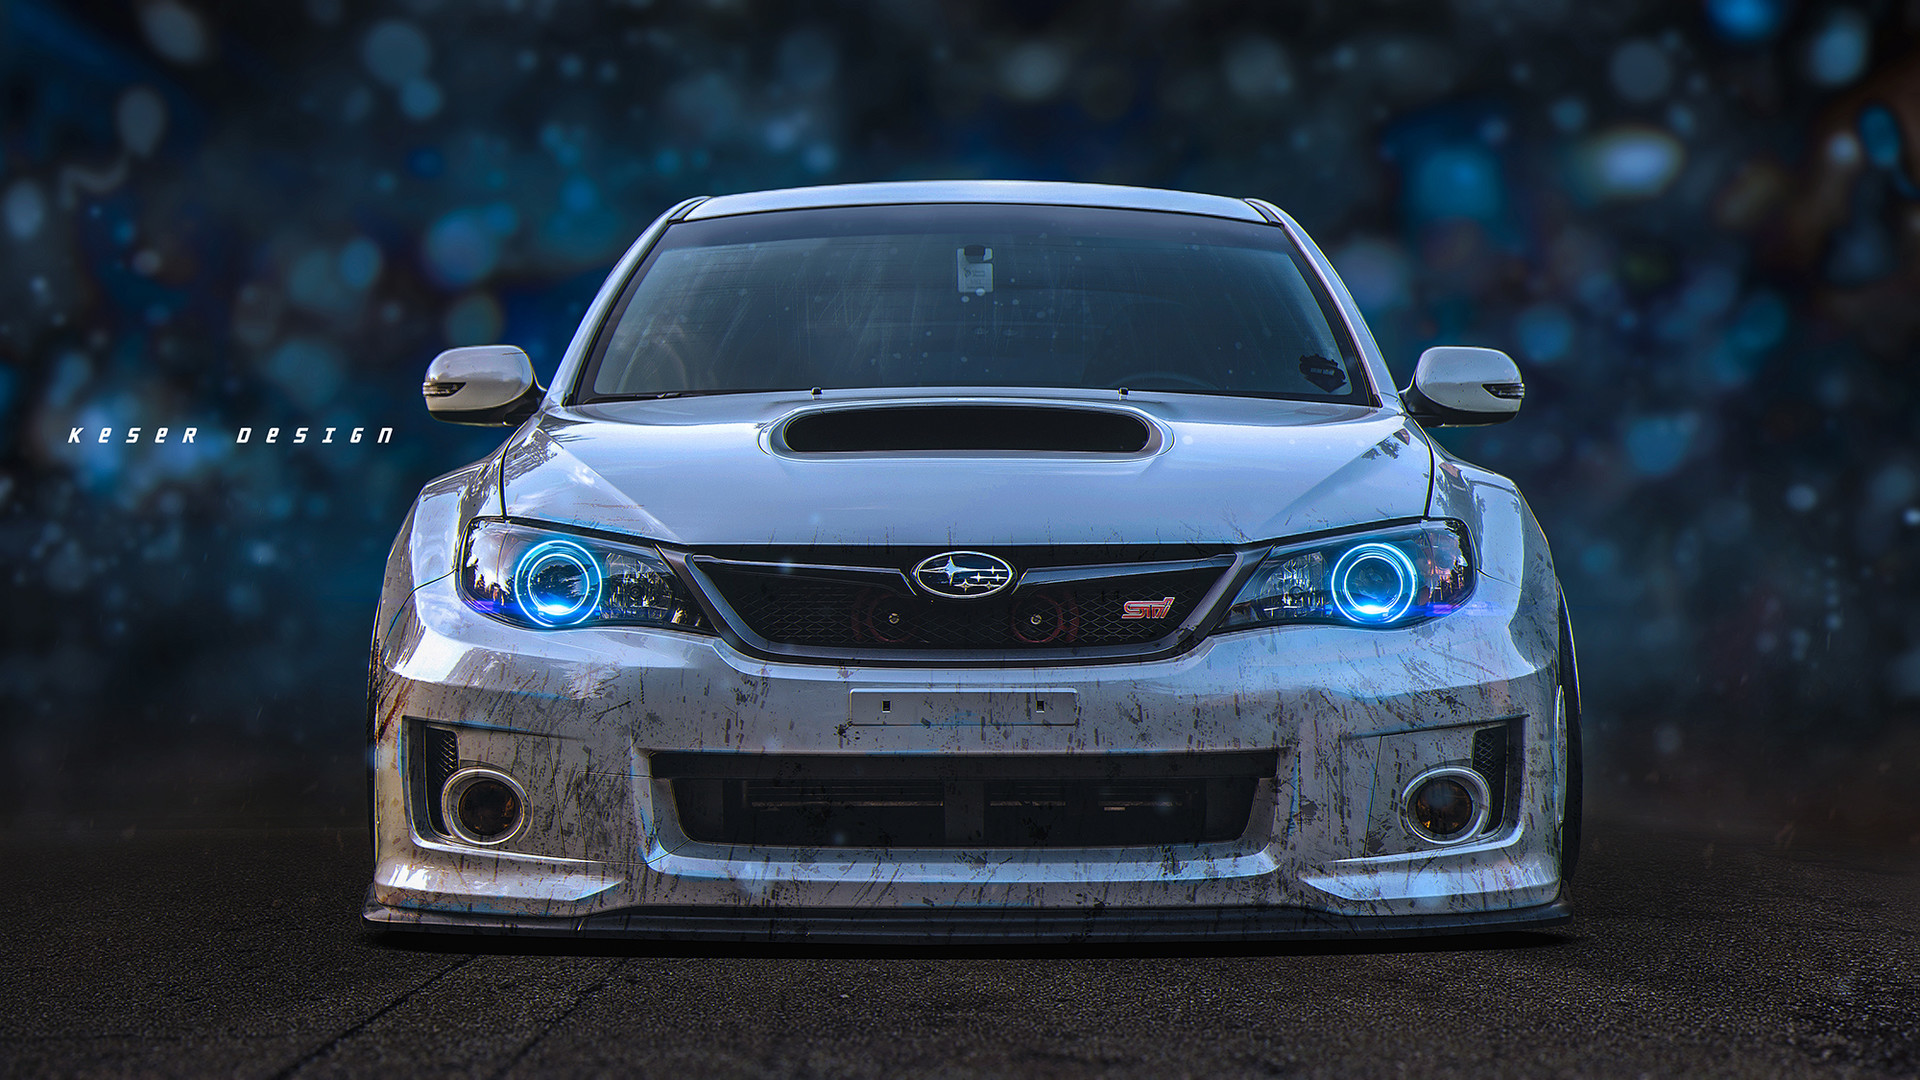 Wrx Sti Wallpapers 76 Background Pictures